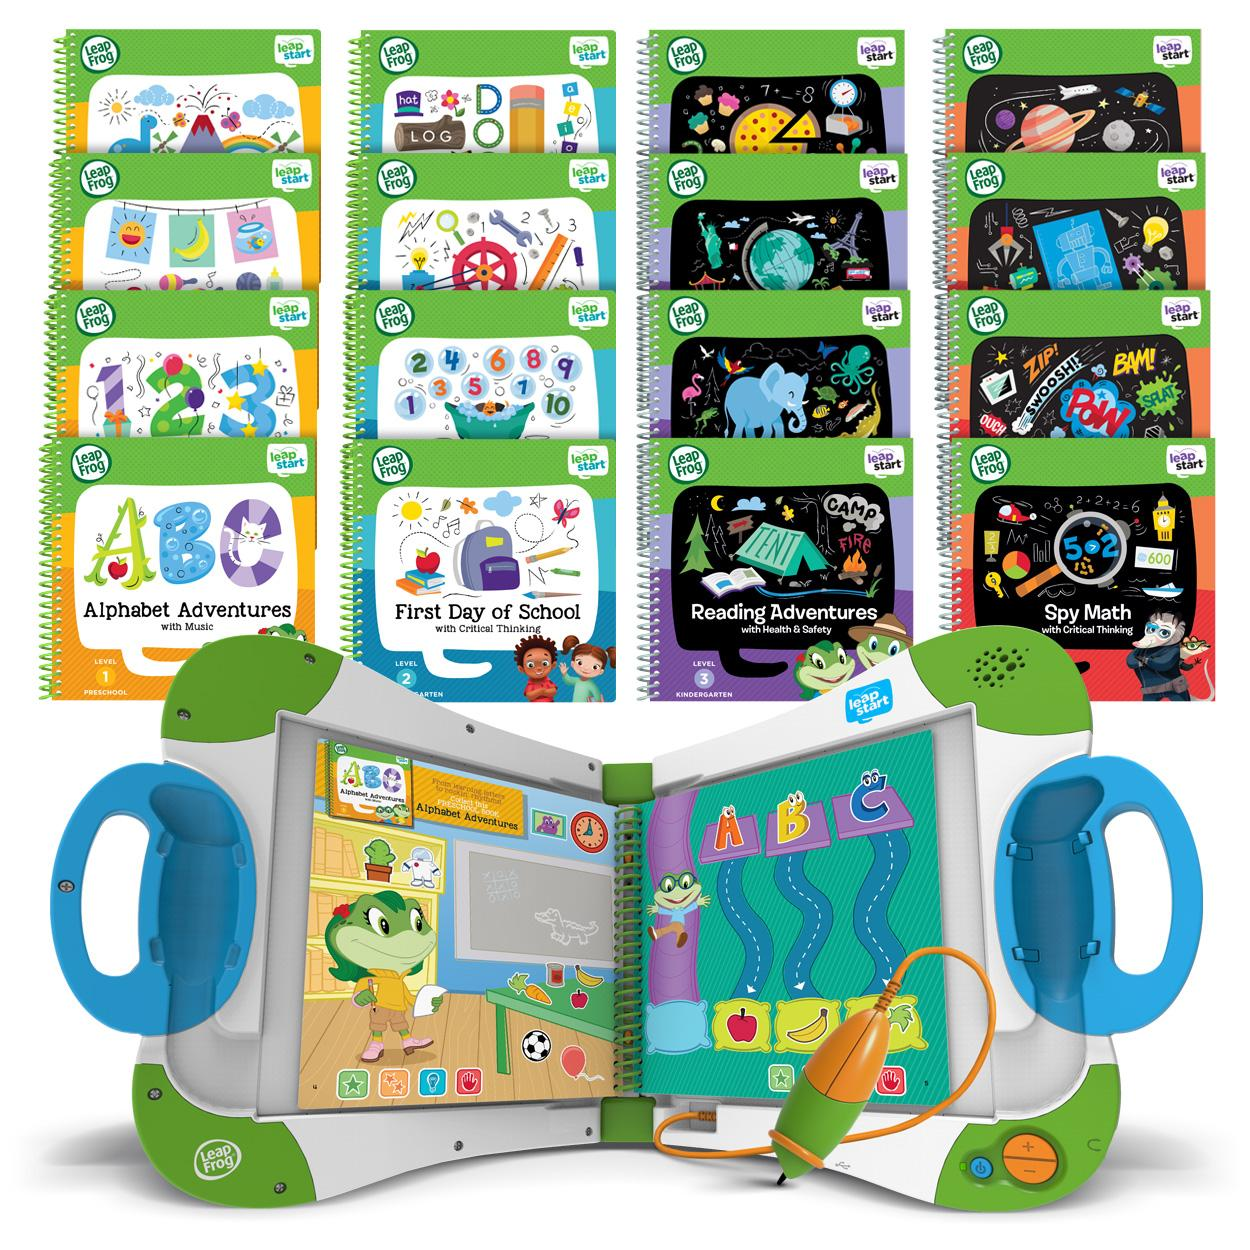 Amazon.com: LeapFrog LeapStart Interactive Learning System ...